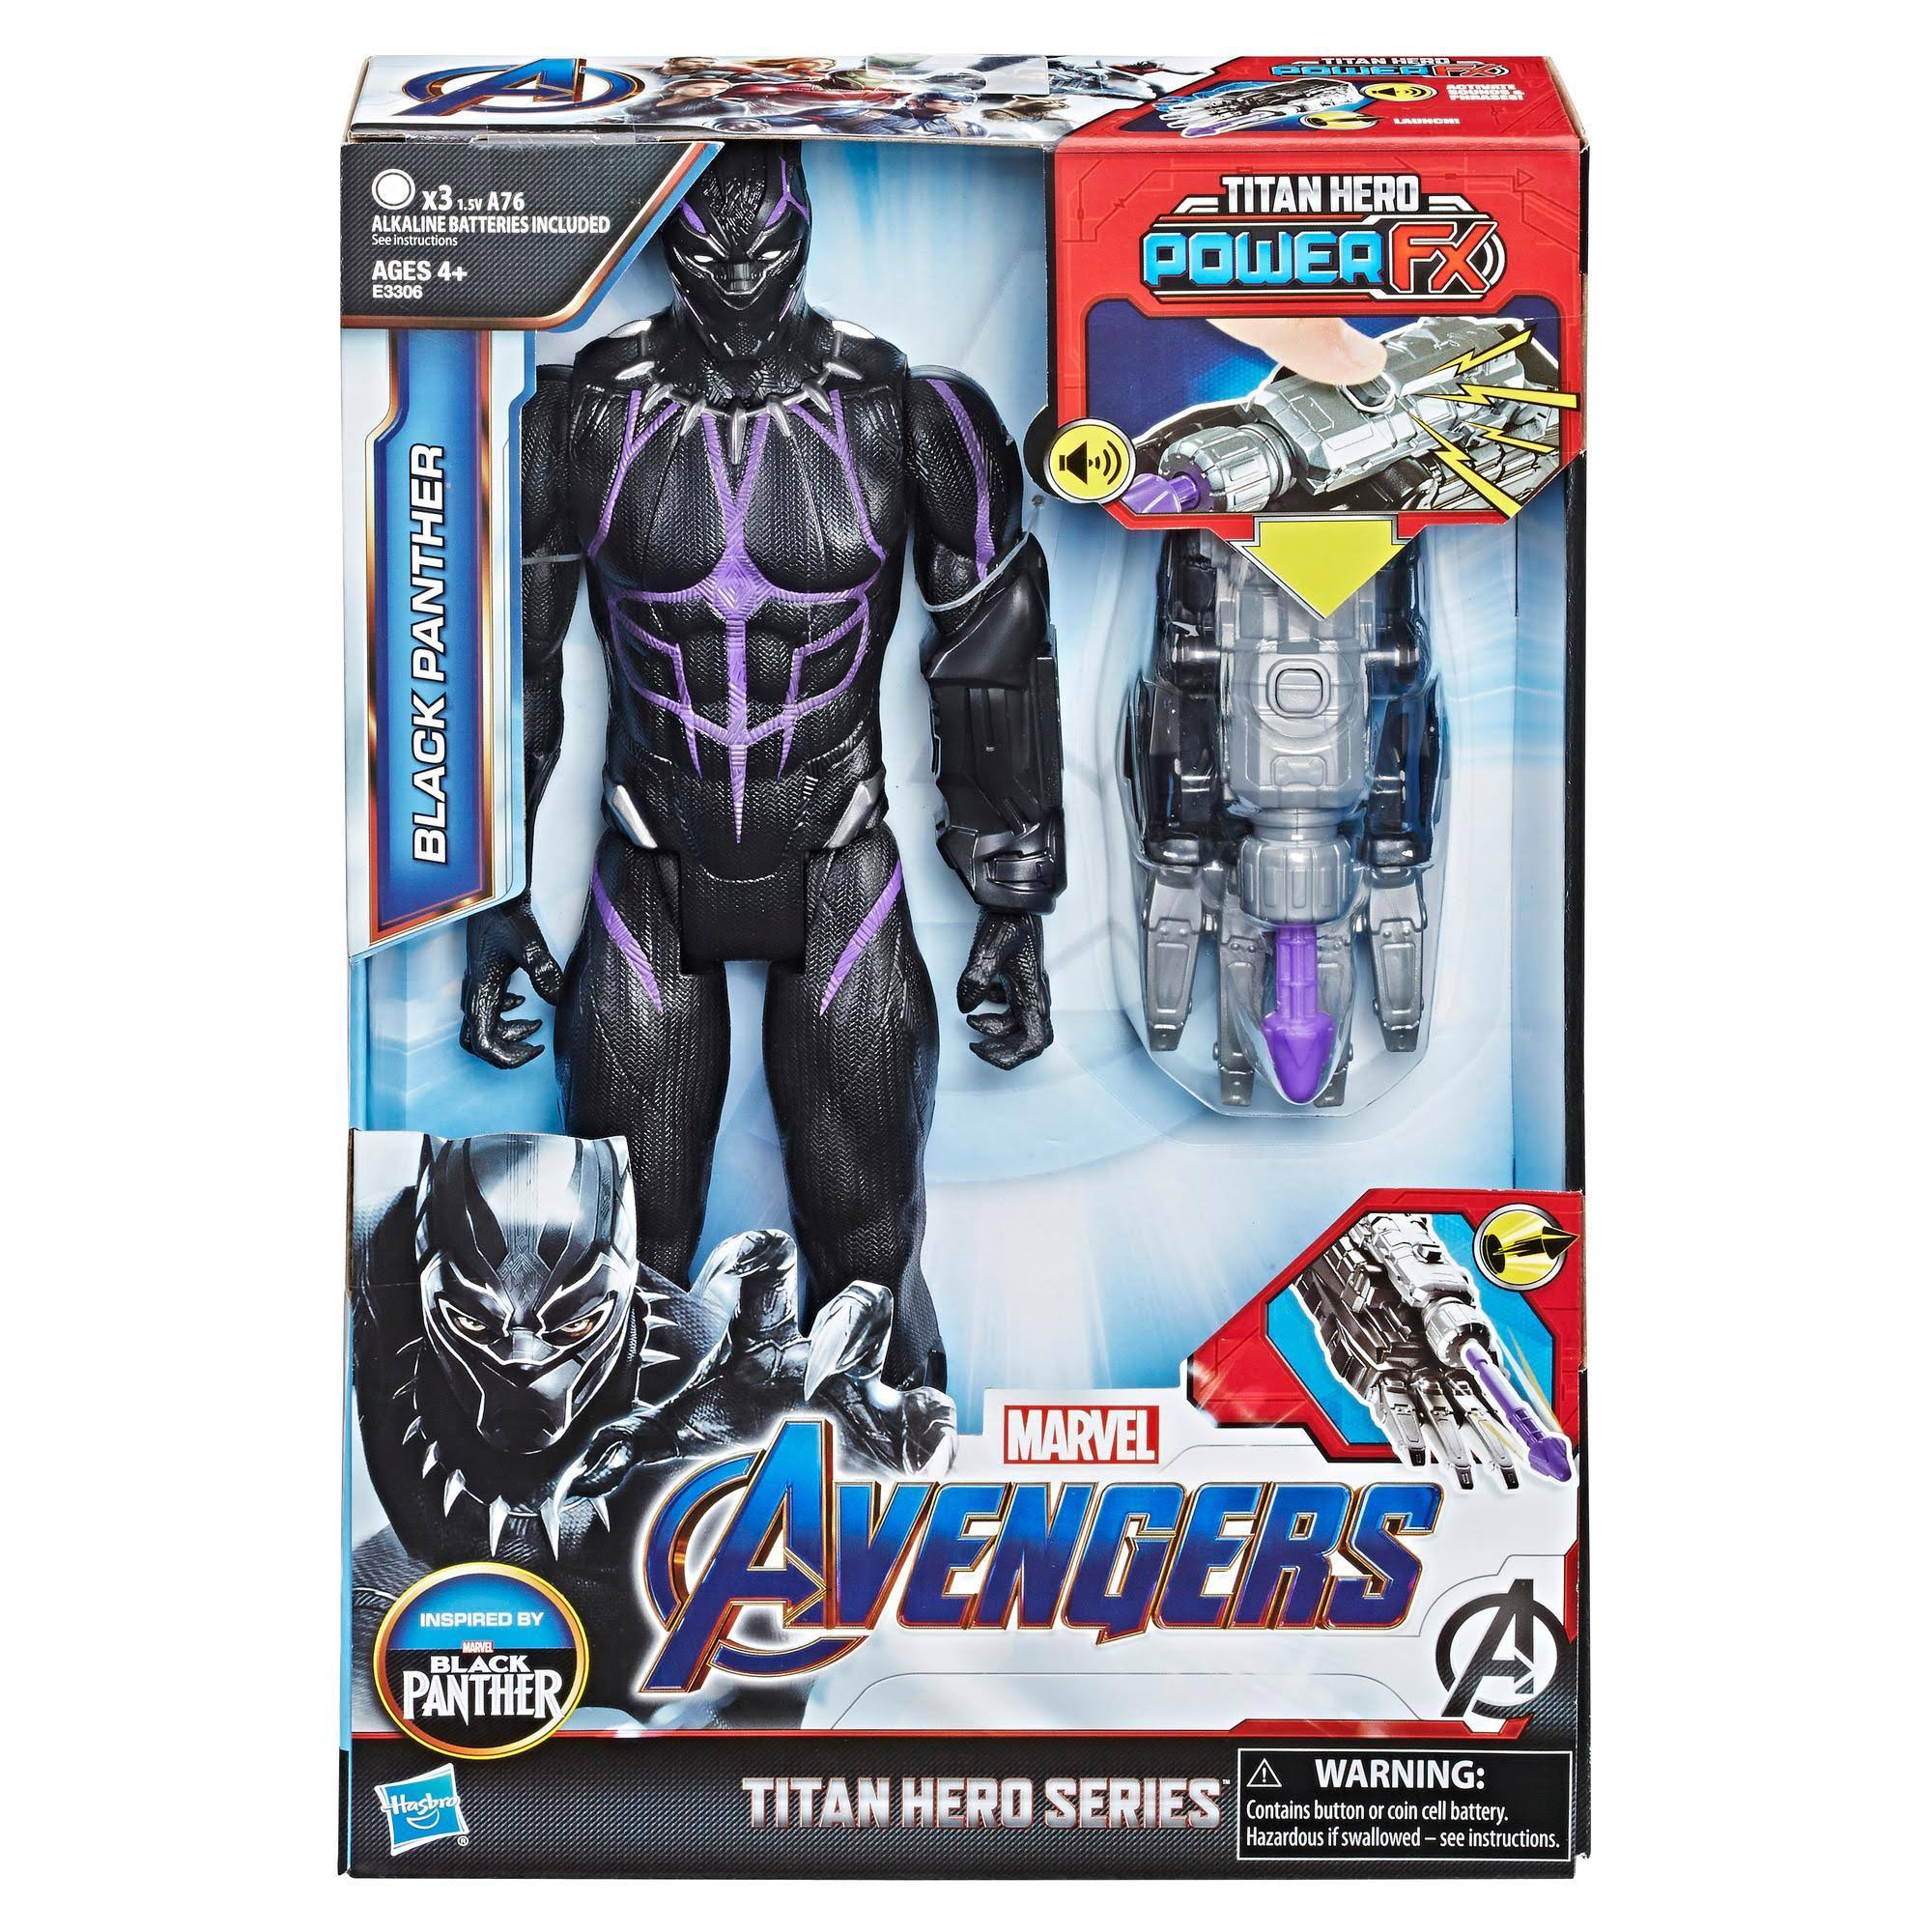 Marvel Avengers Endgame Titan Hero Power FX Black Panther Figure